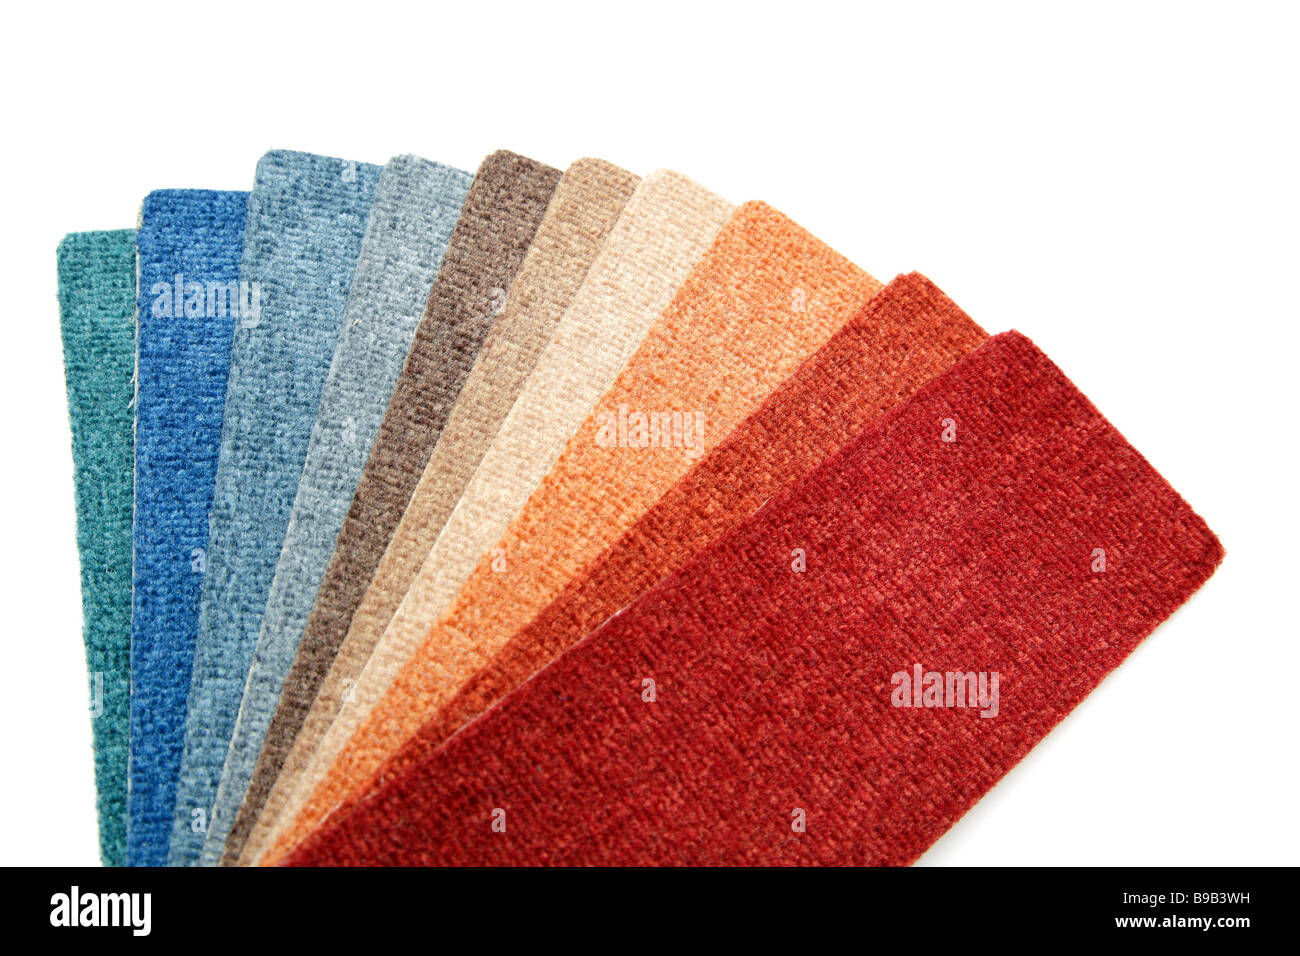 Samples of color a carpet covering in shop - Stock Image